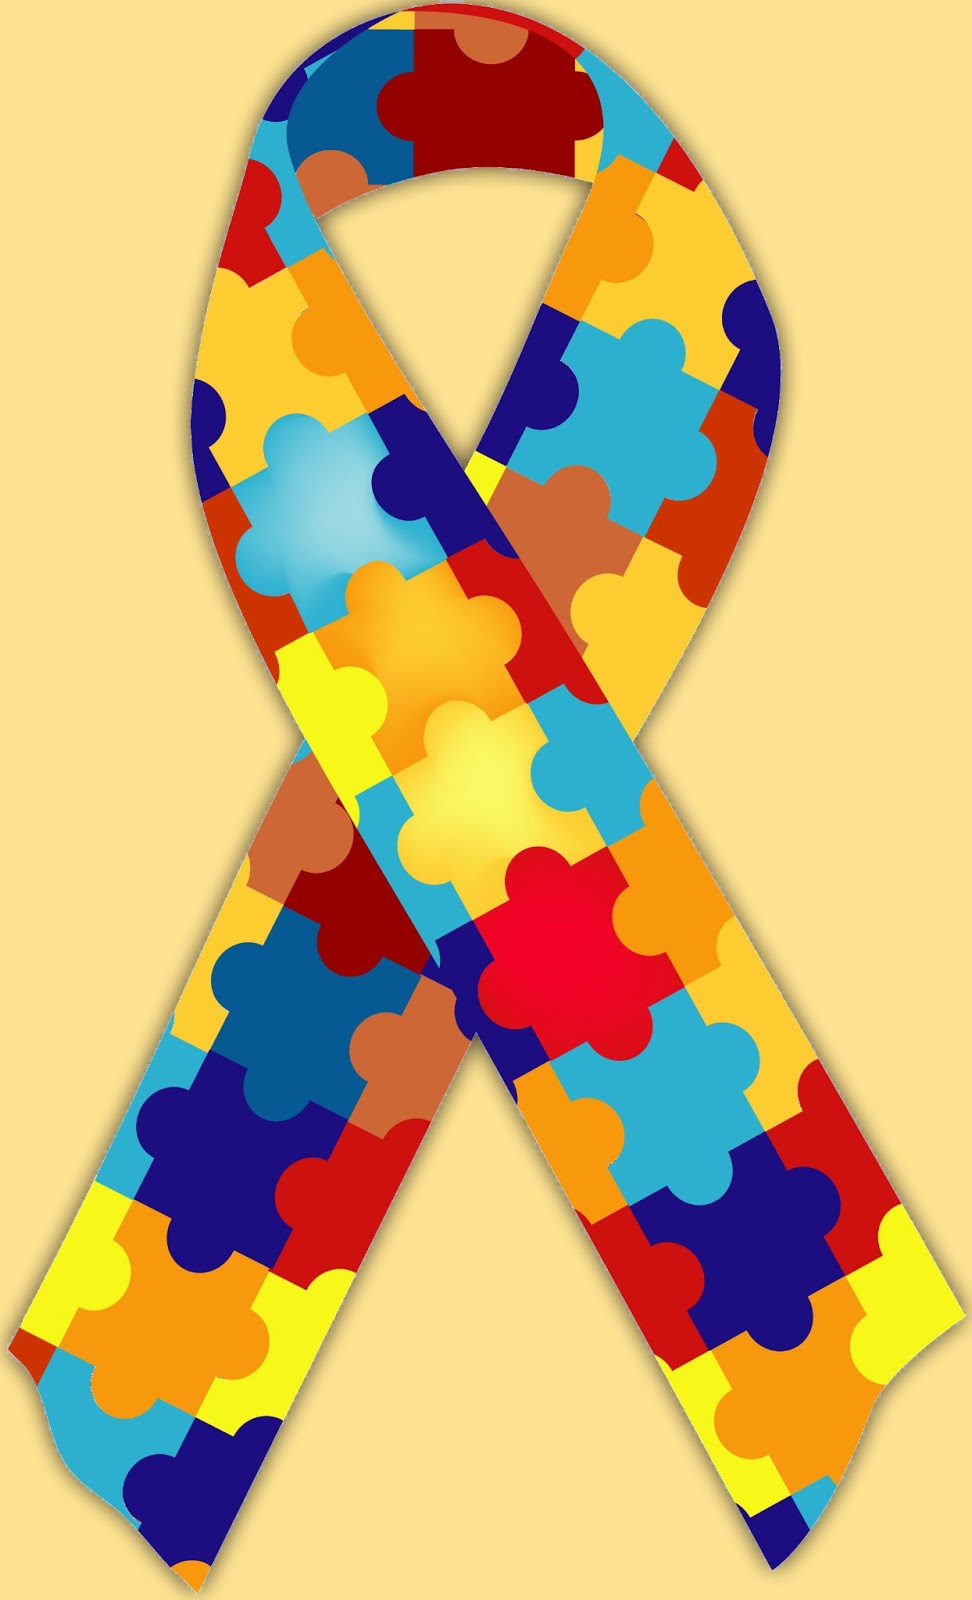 Younger Siblings Of Autistic Children